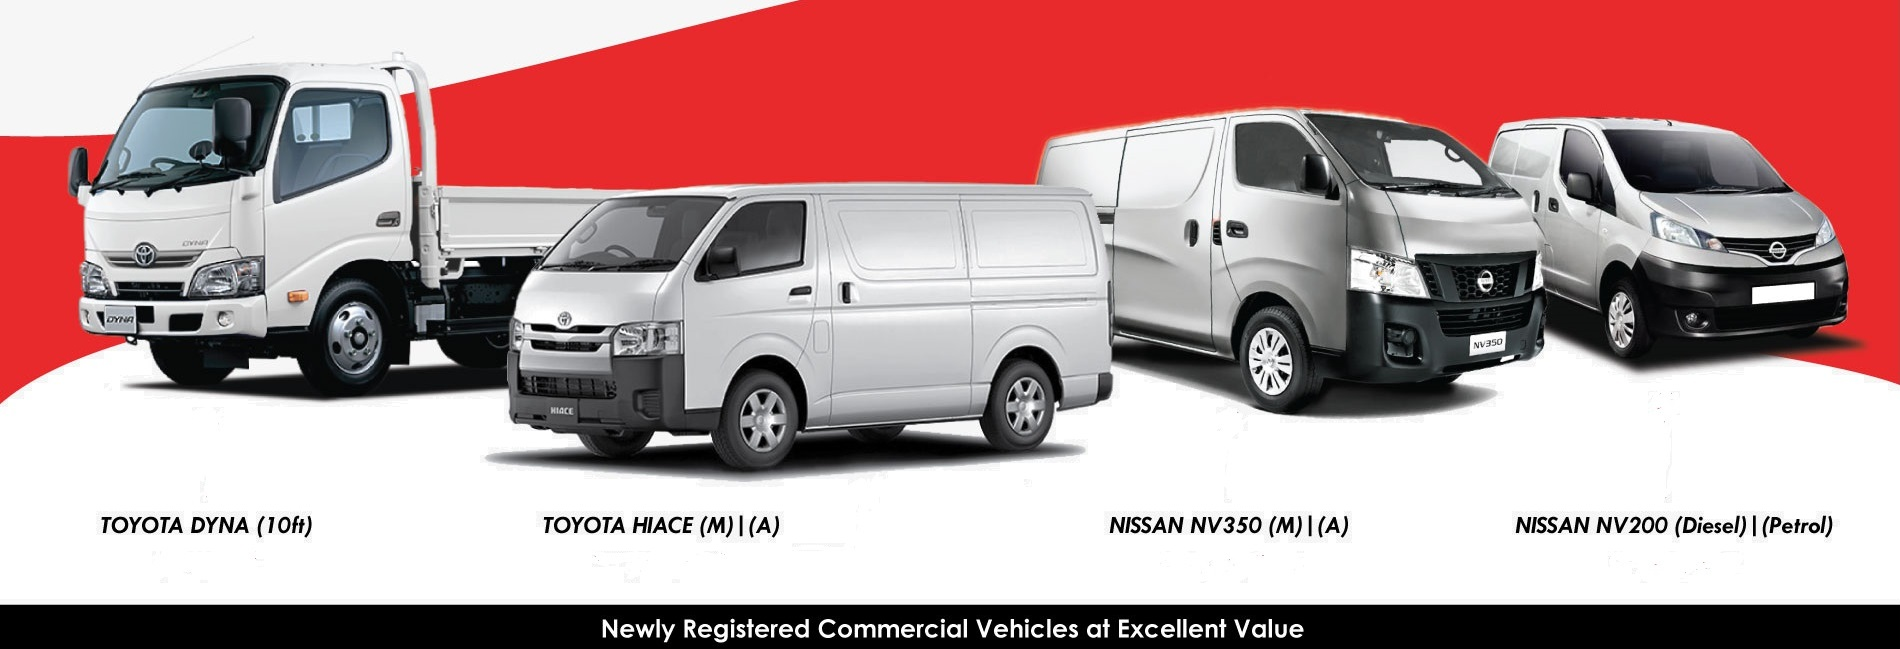 PROMOTION FOR BRAND NEW COMMERCIAL VEHICLES